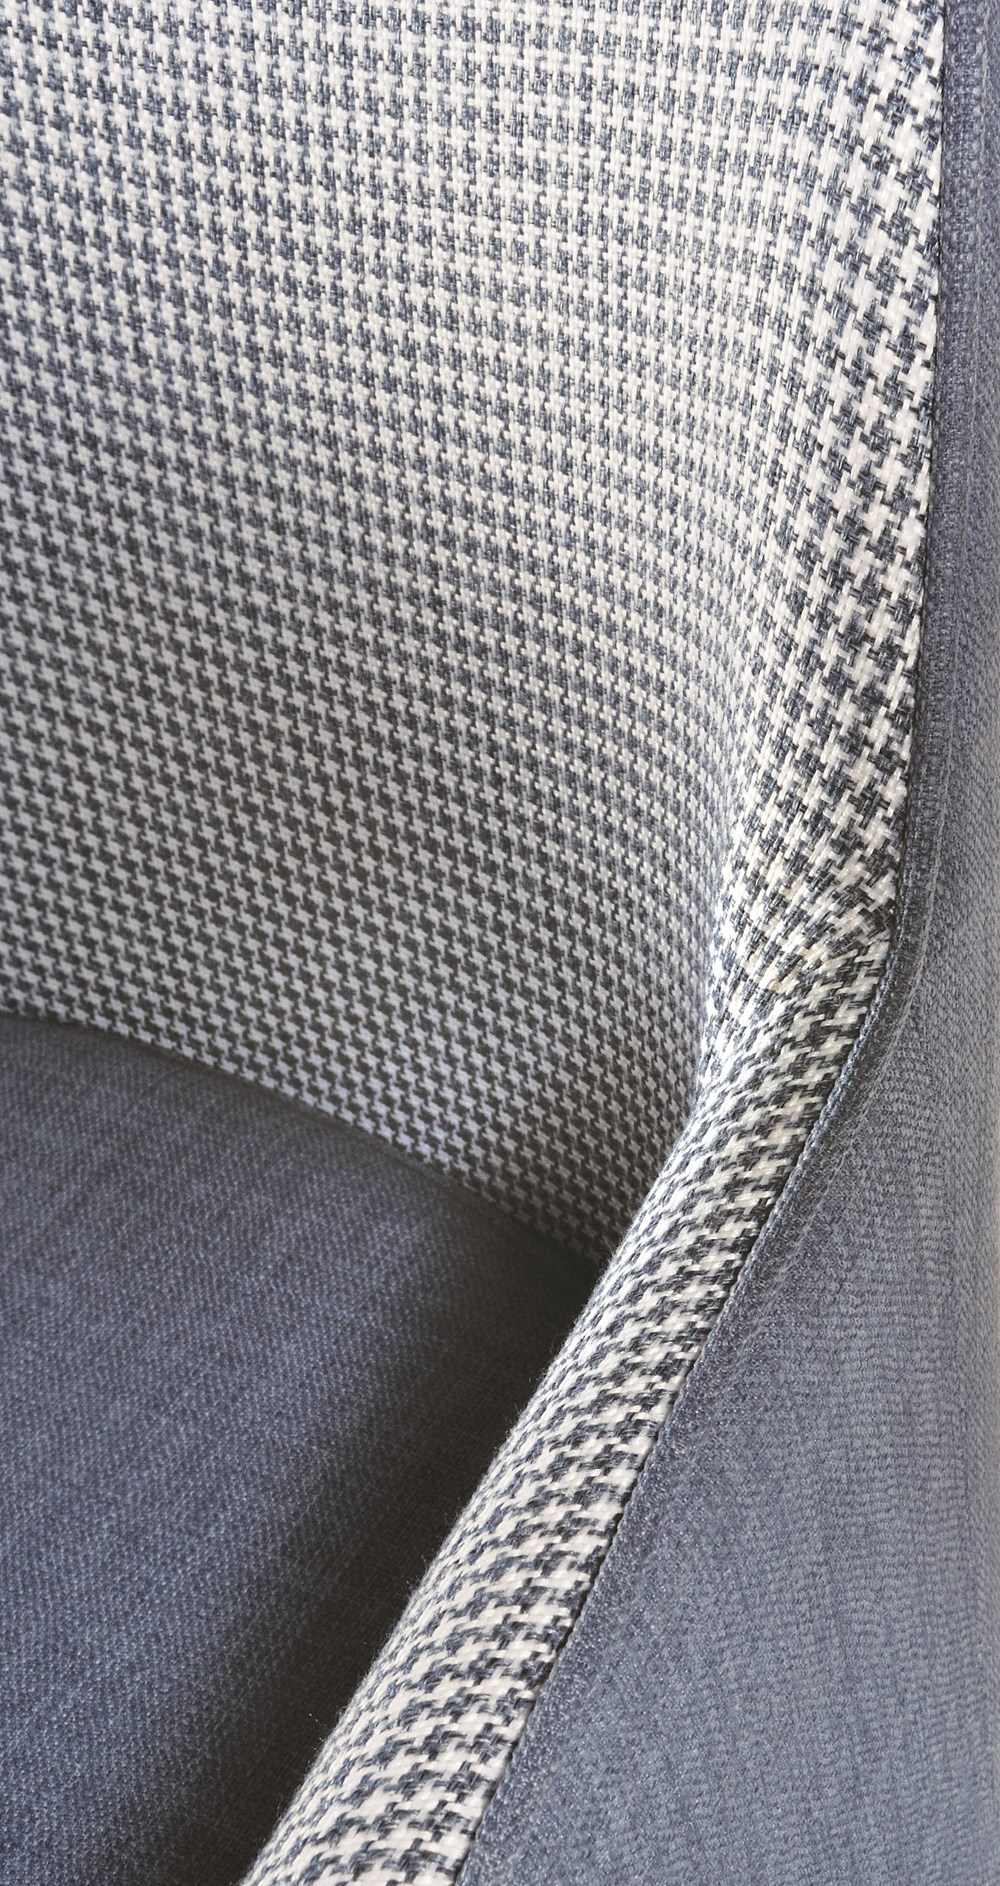 LOUISE Dining Chair in Blue Houndstooth with Black Legs